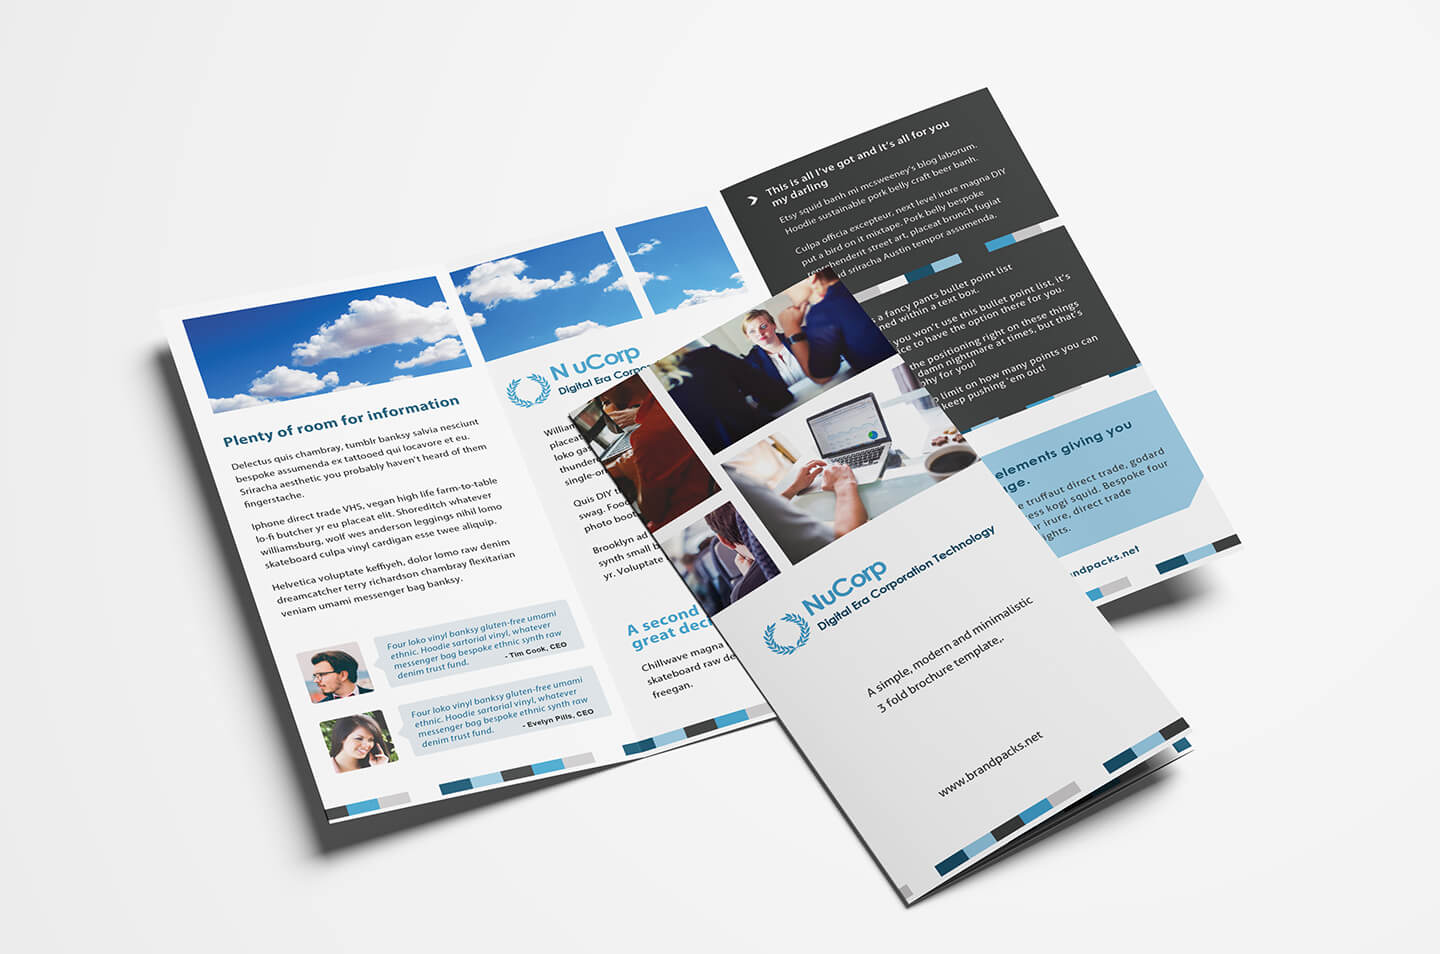 Free Corporate Trifold Brochure Template In Psd, Ai & Vector within 3 Fold Brochure Template Psd Free Download